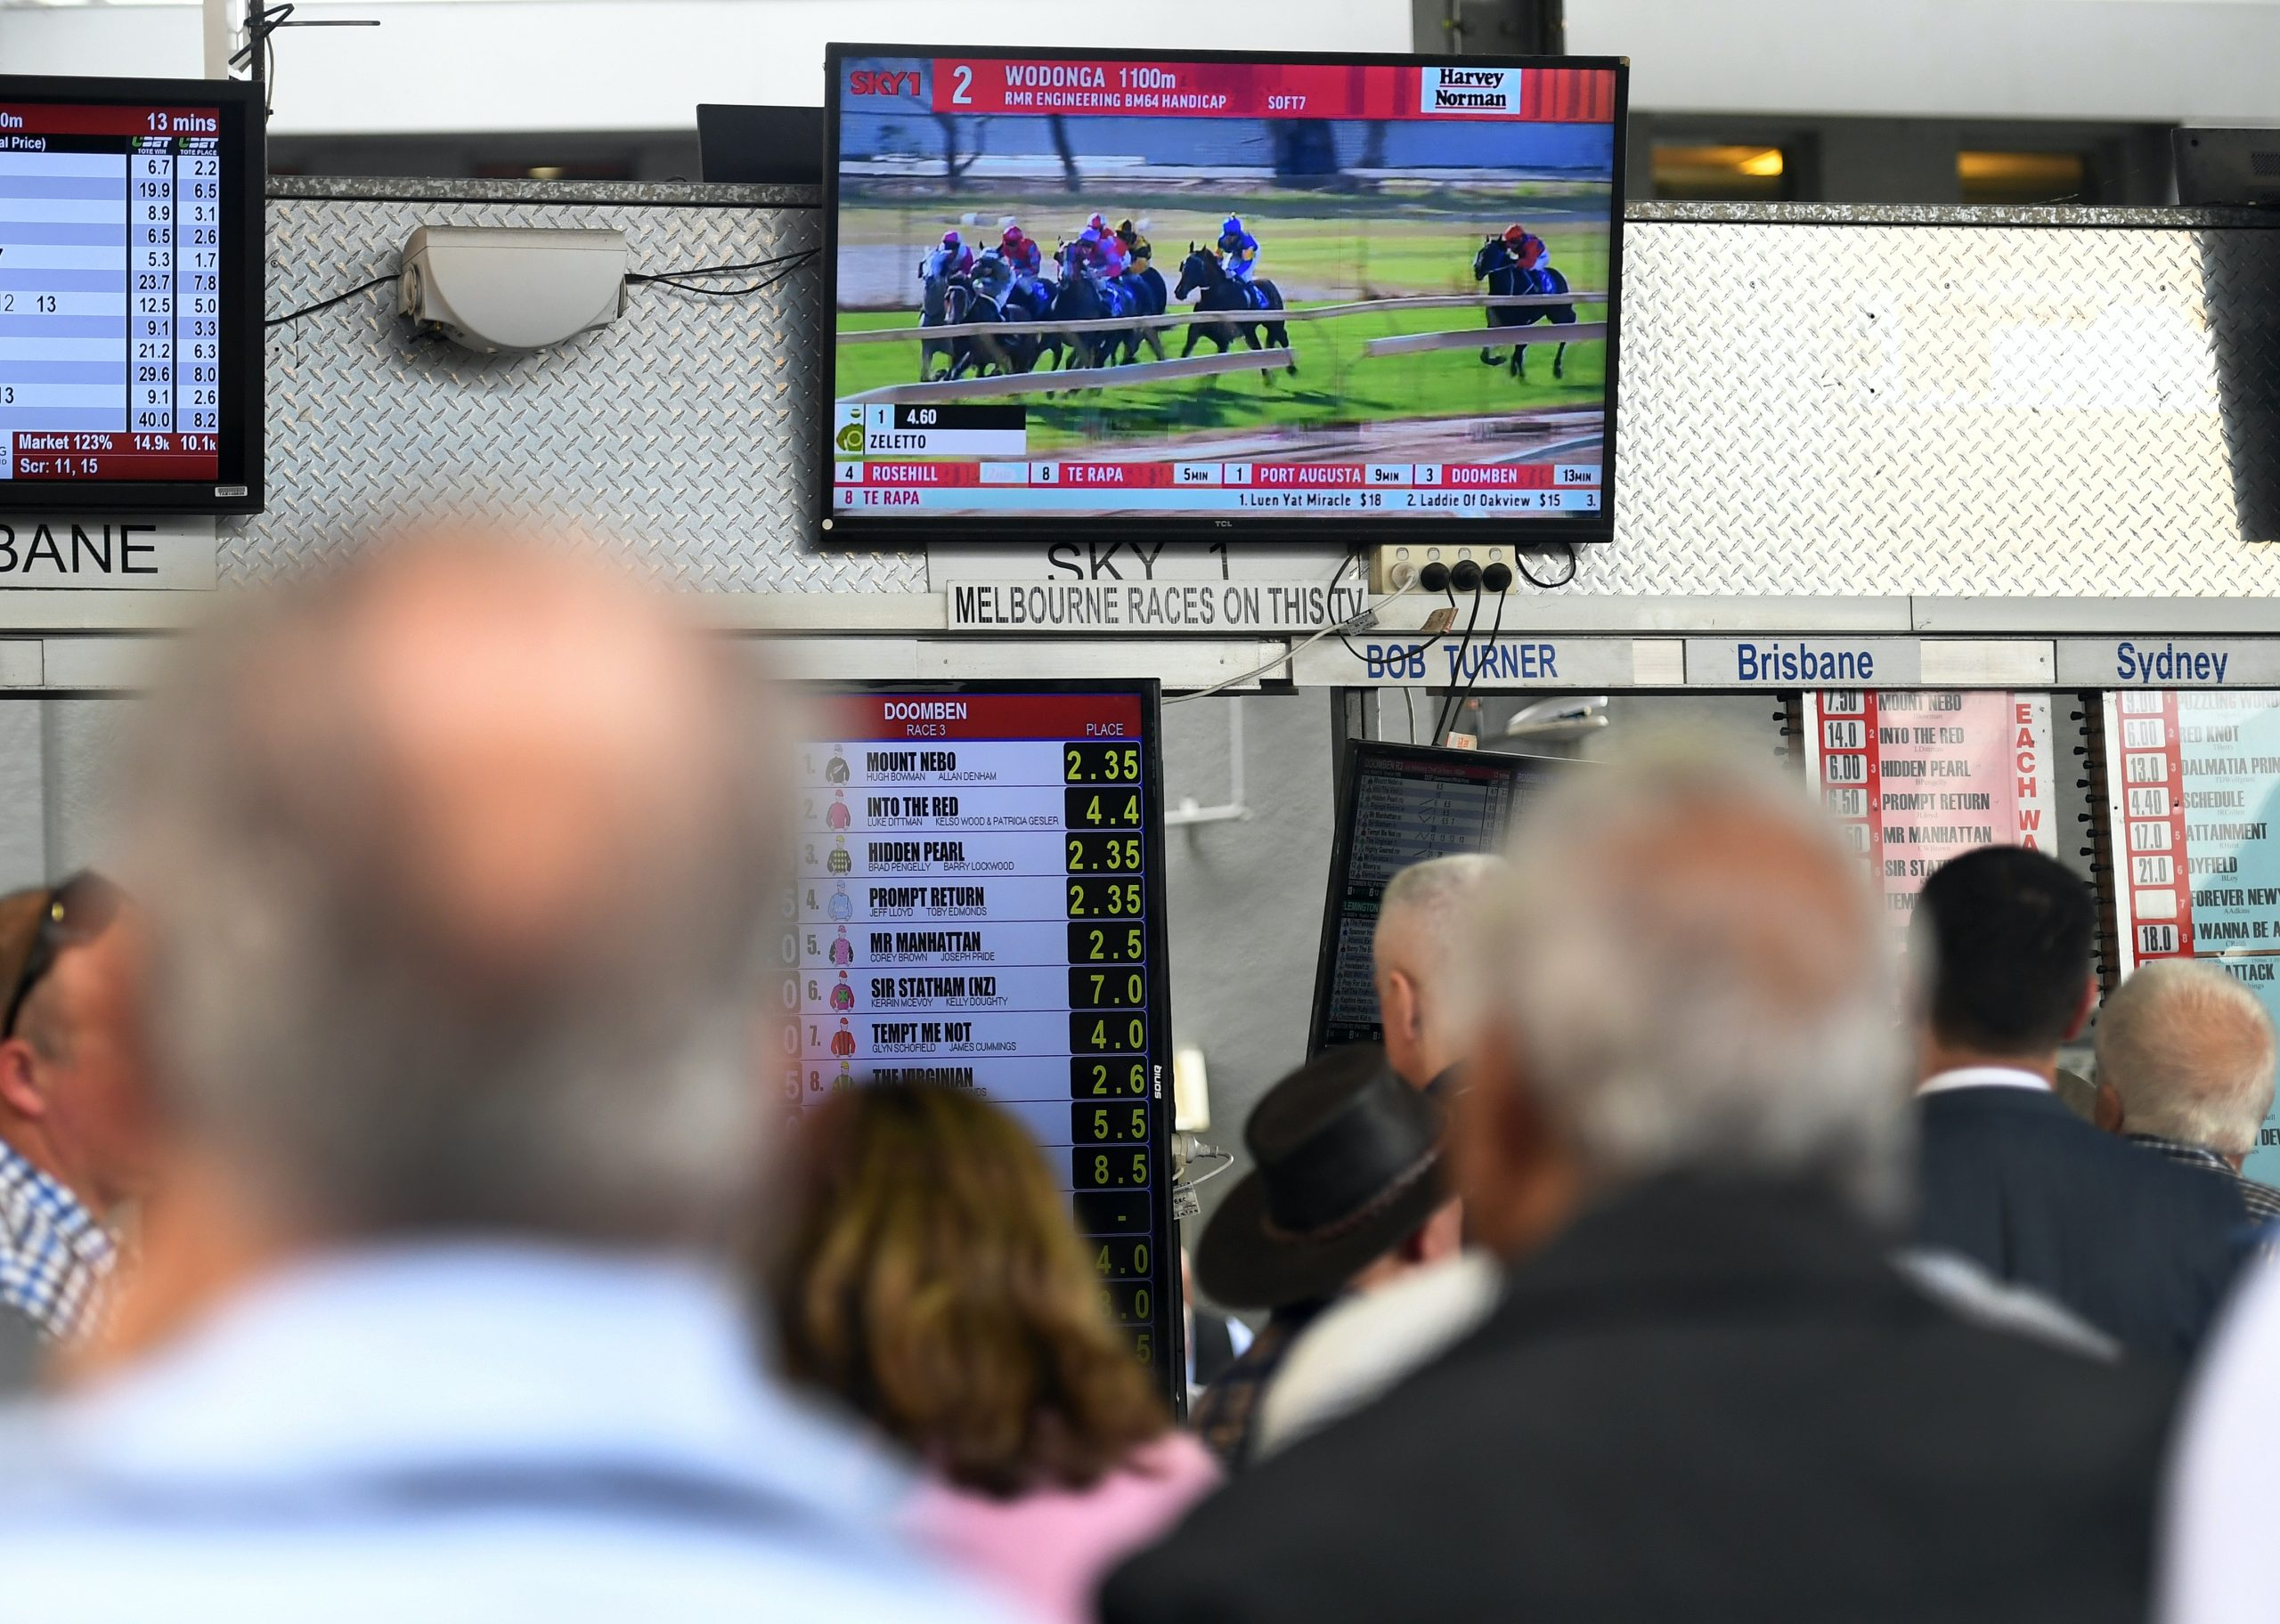 Punter watch a horse race on television